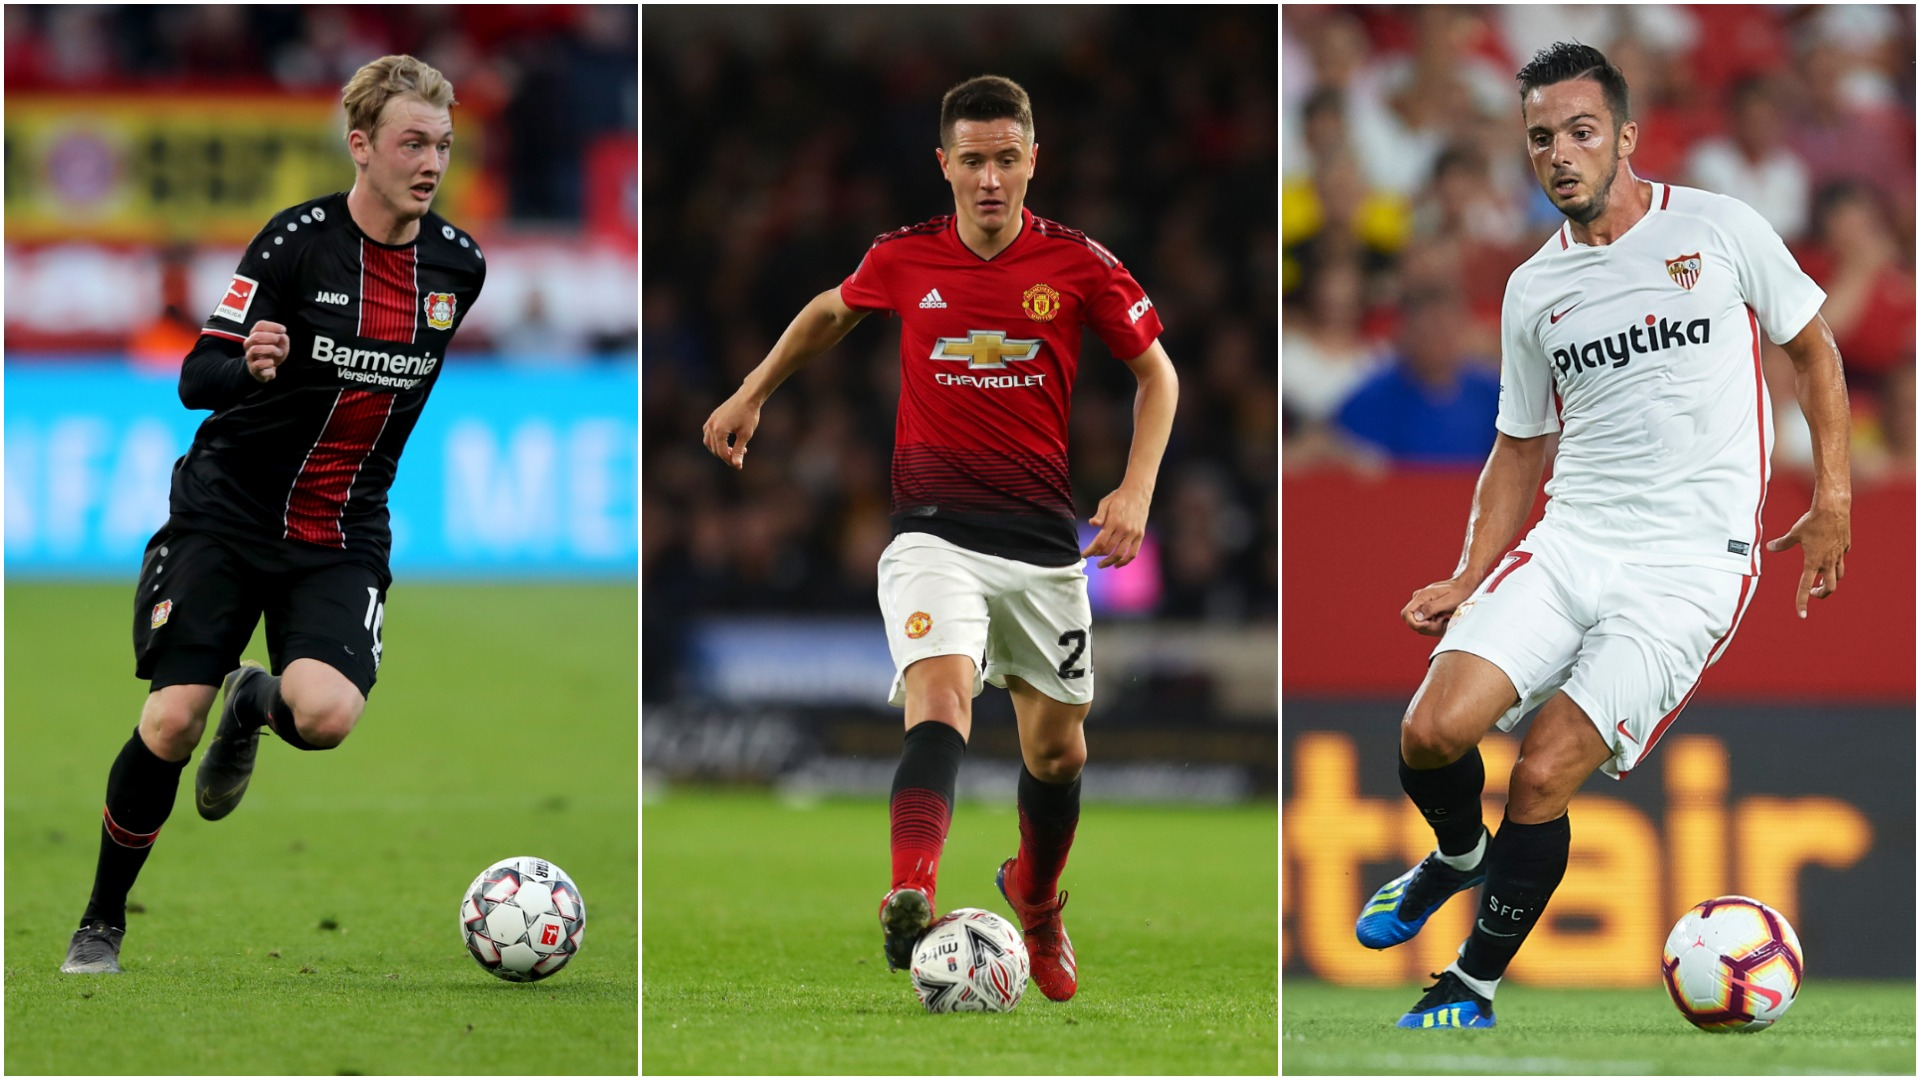 The Premier League's transfer window is open and Omnisport examined some potential bargain purchases with the help of Opta data.